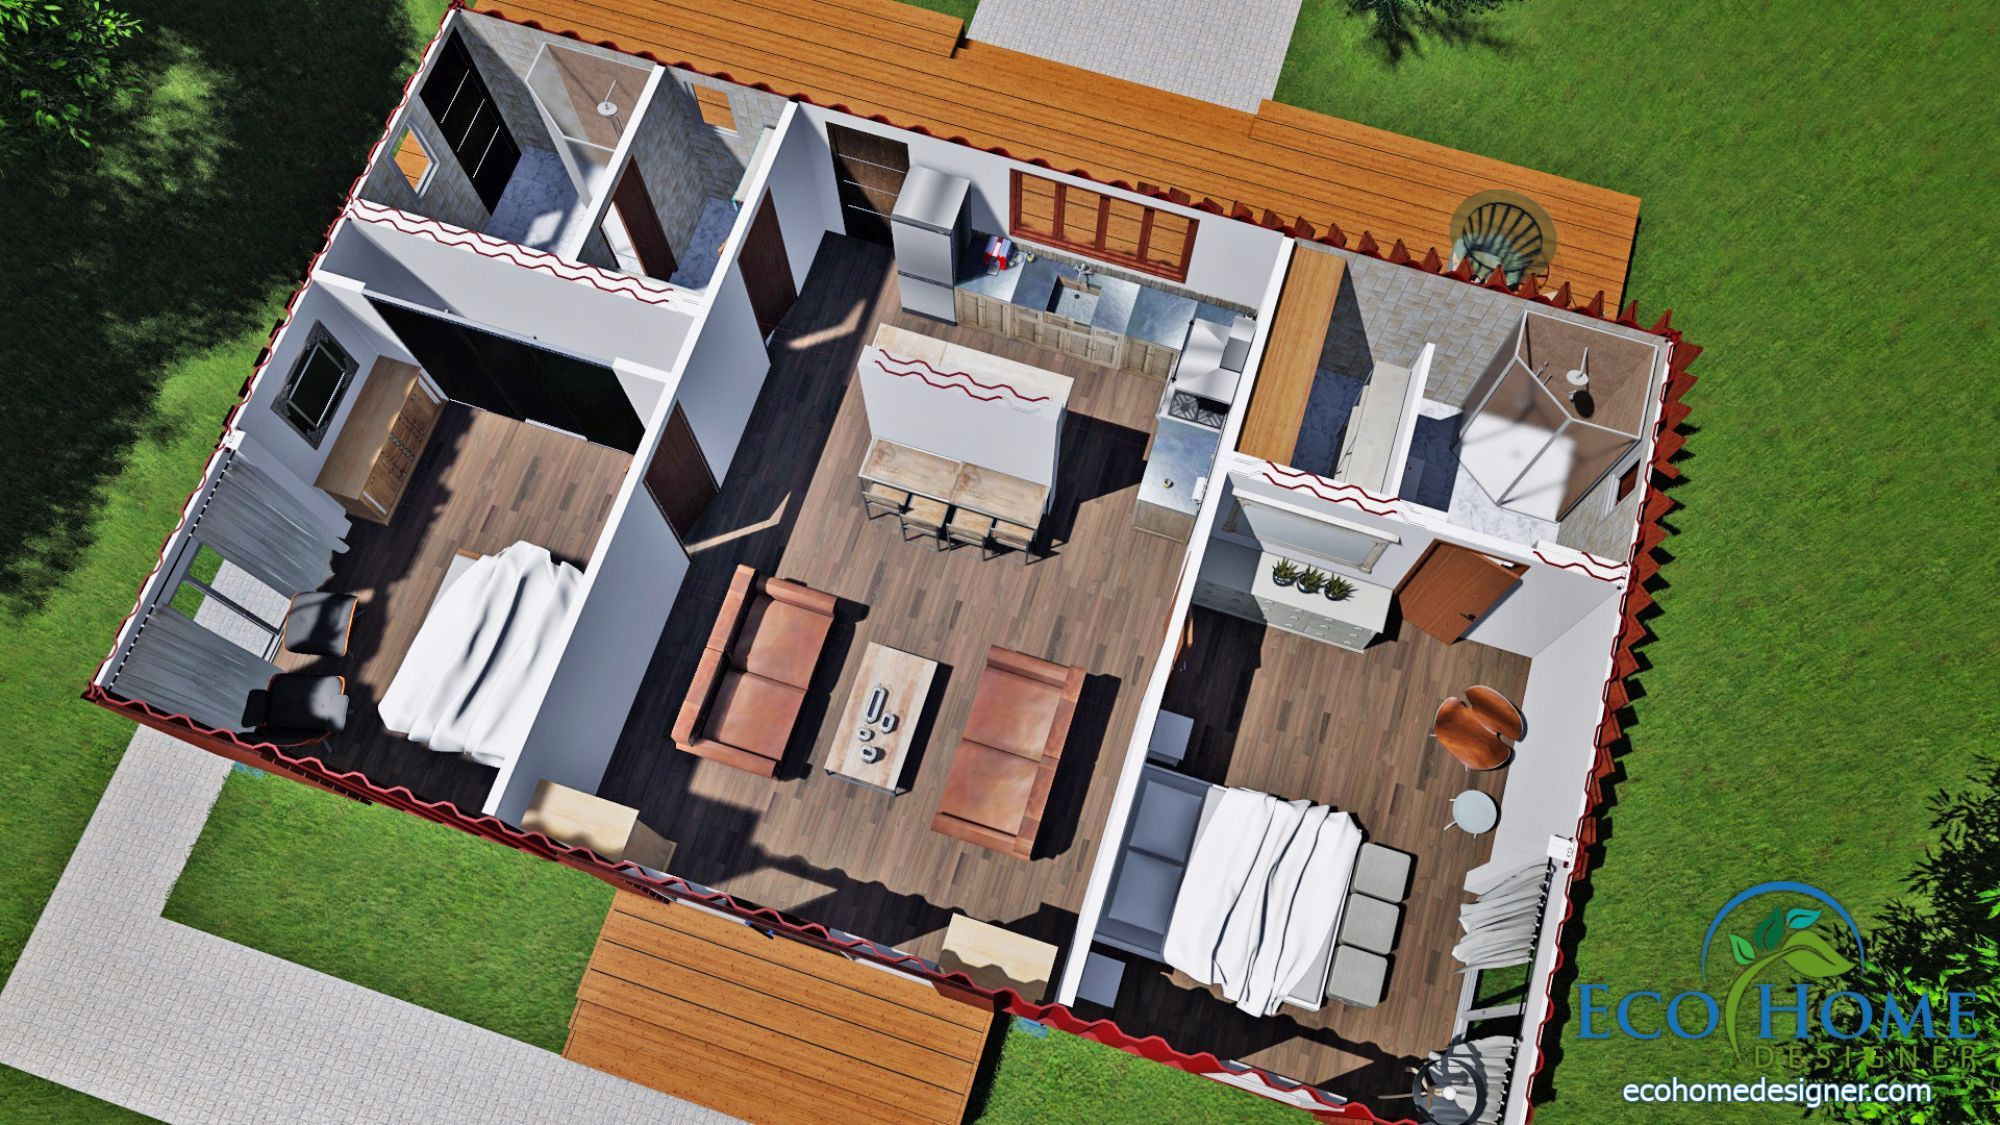 Sch11 3 X 40ft 2 Bedroom Container Home Plans Container House Plans Container House Shipping Container House Plans